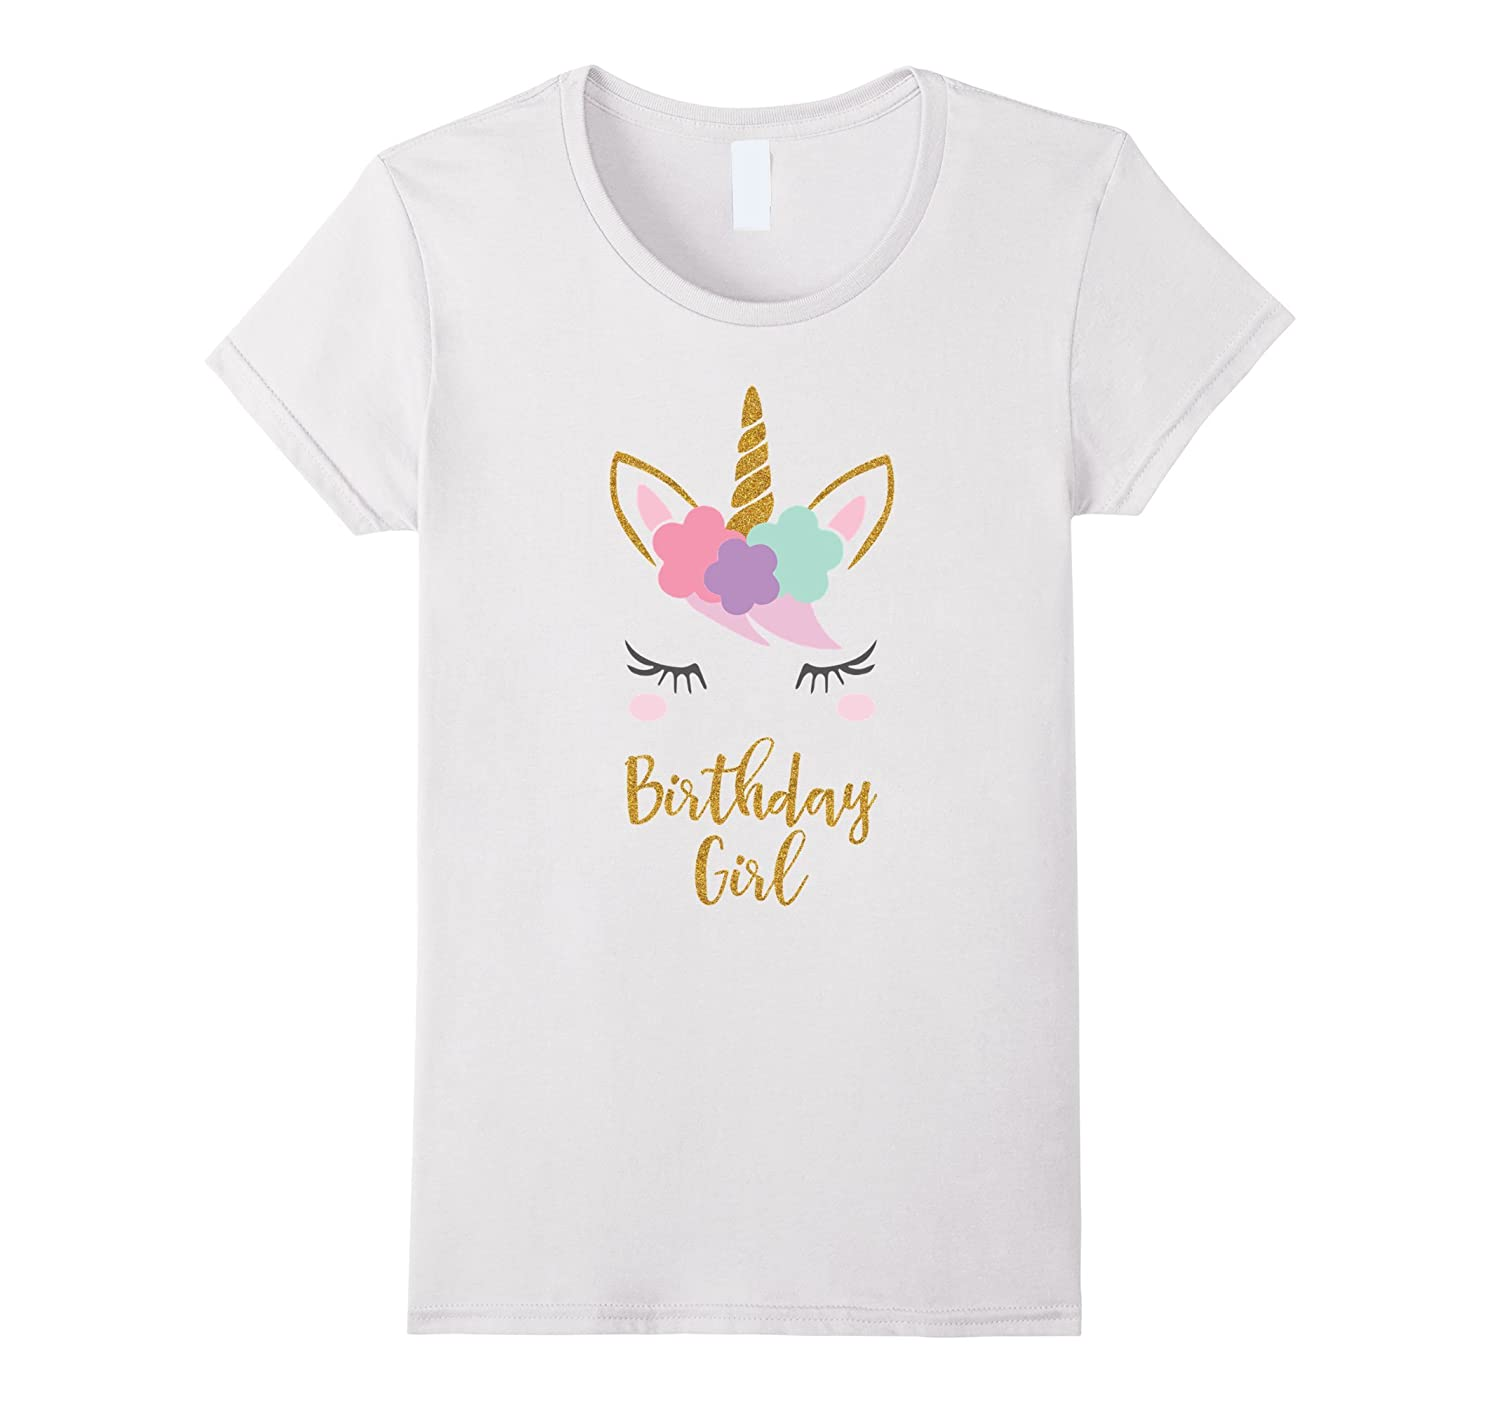 Unicorn Birthday T-Shirt, Unicorn Gift, Birthday Outfit-FL